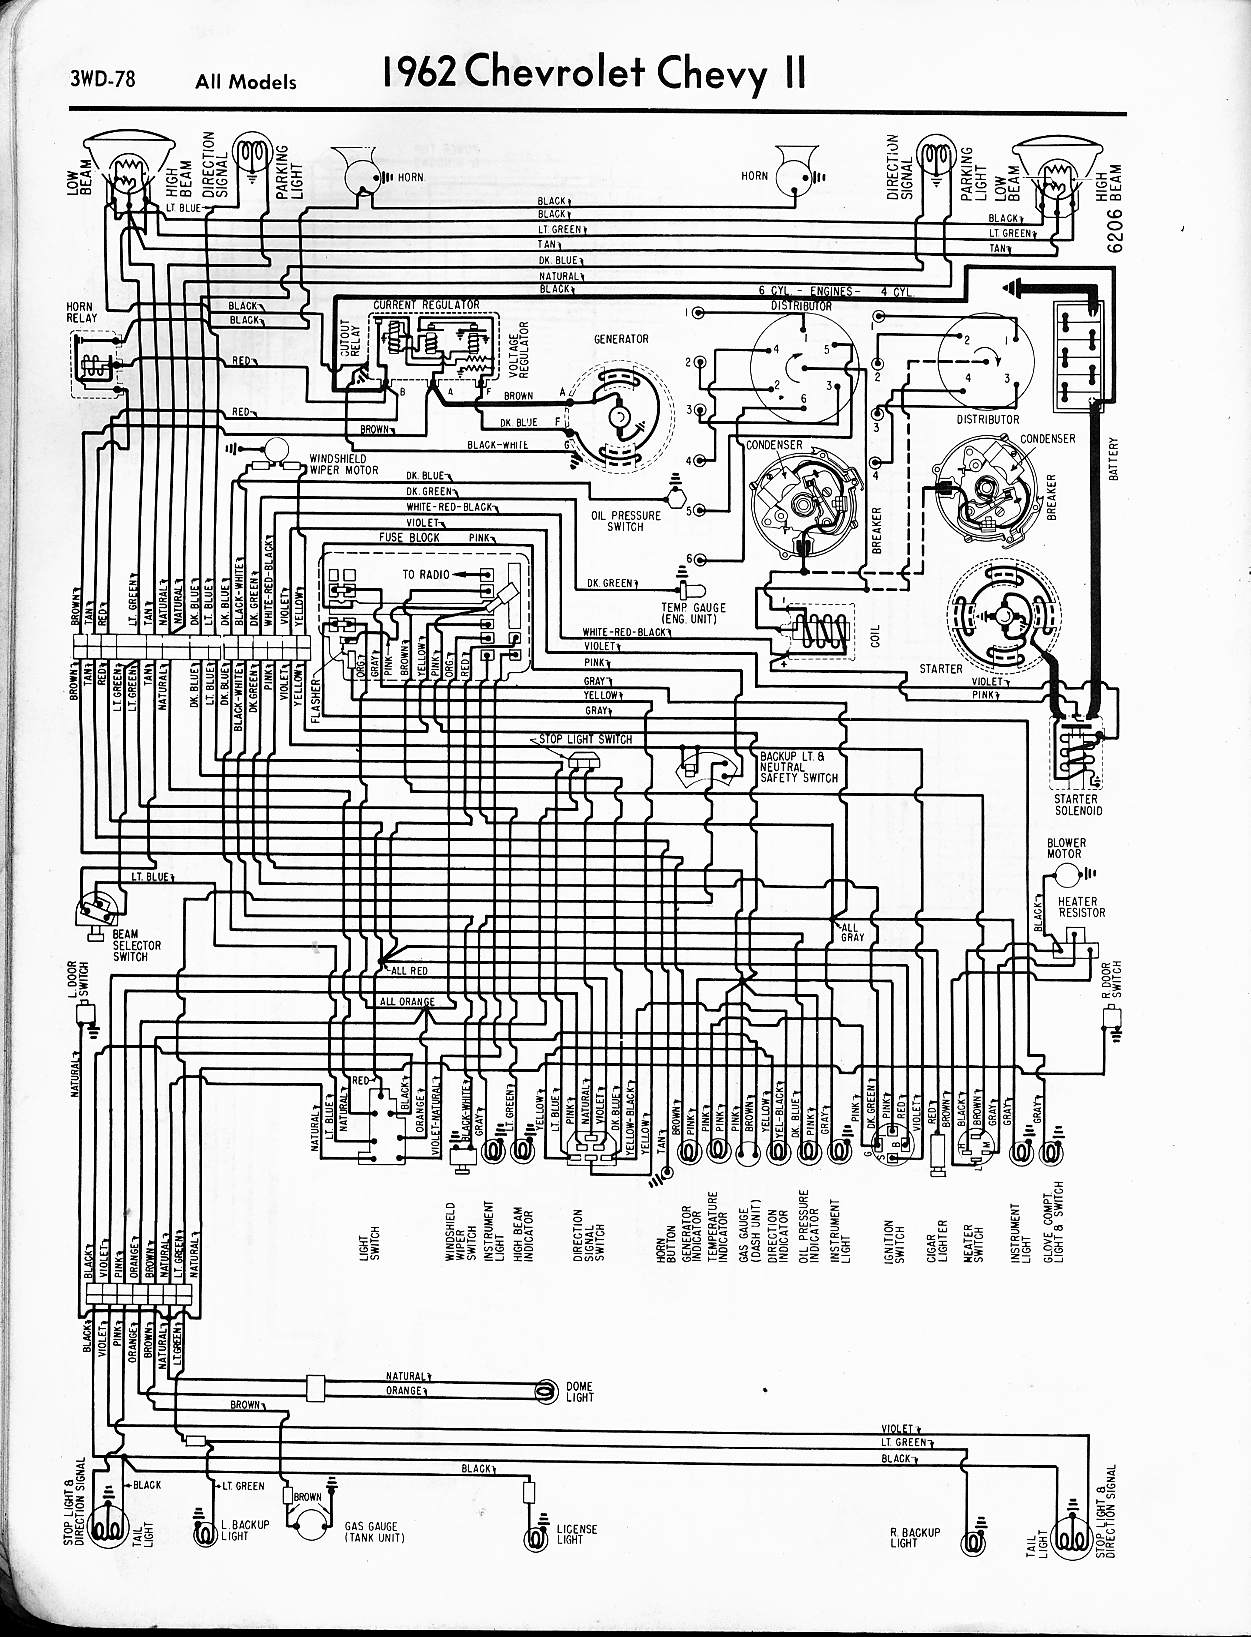 Wiring Diagram On 73 Chevy C10 Distributor To Also 1962 Chevy Nova on 1969 camaro wiring diagram, 70 chevelle wiring diagram, 1966 chevelle wiring diagram, 1966 impala wiring diagram, ignition box wiring diagram, 1968 camaro wiring diagram, 1964 nova exhaust system, 1964 nova radio, 1959 impala wiring diagram, 1965 chevelle wiring diagram, 1960 impala wiring diagram, 1965 impala wiring diagram, 1970 chevelle wiring diagram, 1968 chevelle wiring diagram, 1967 camaro wiring diagram, 1967 impala wiring diagram, 64 chevelle wiring diagram, 1964 nova relay, 1963 corvette wiring diagram, 1964 nova headlight,